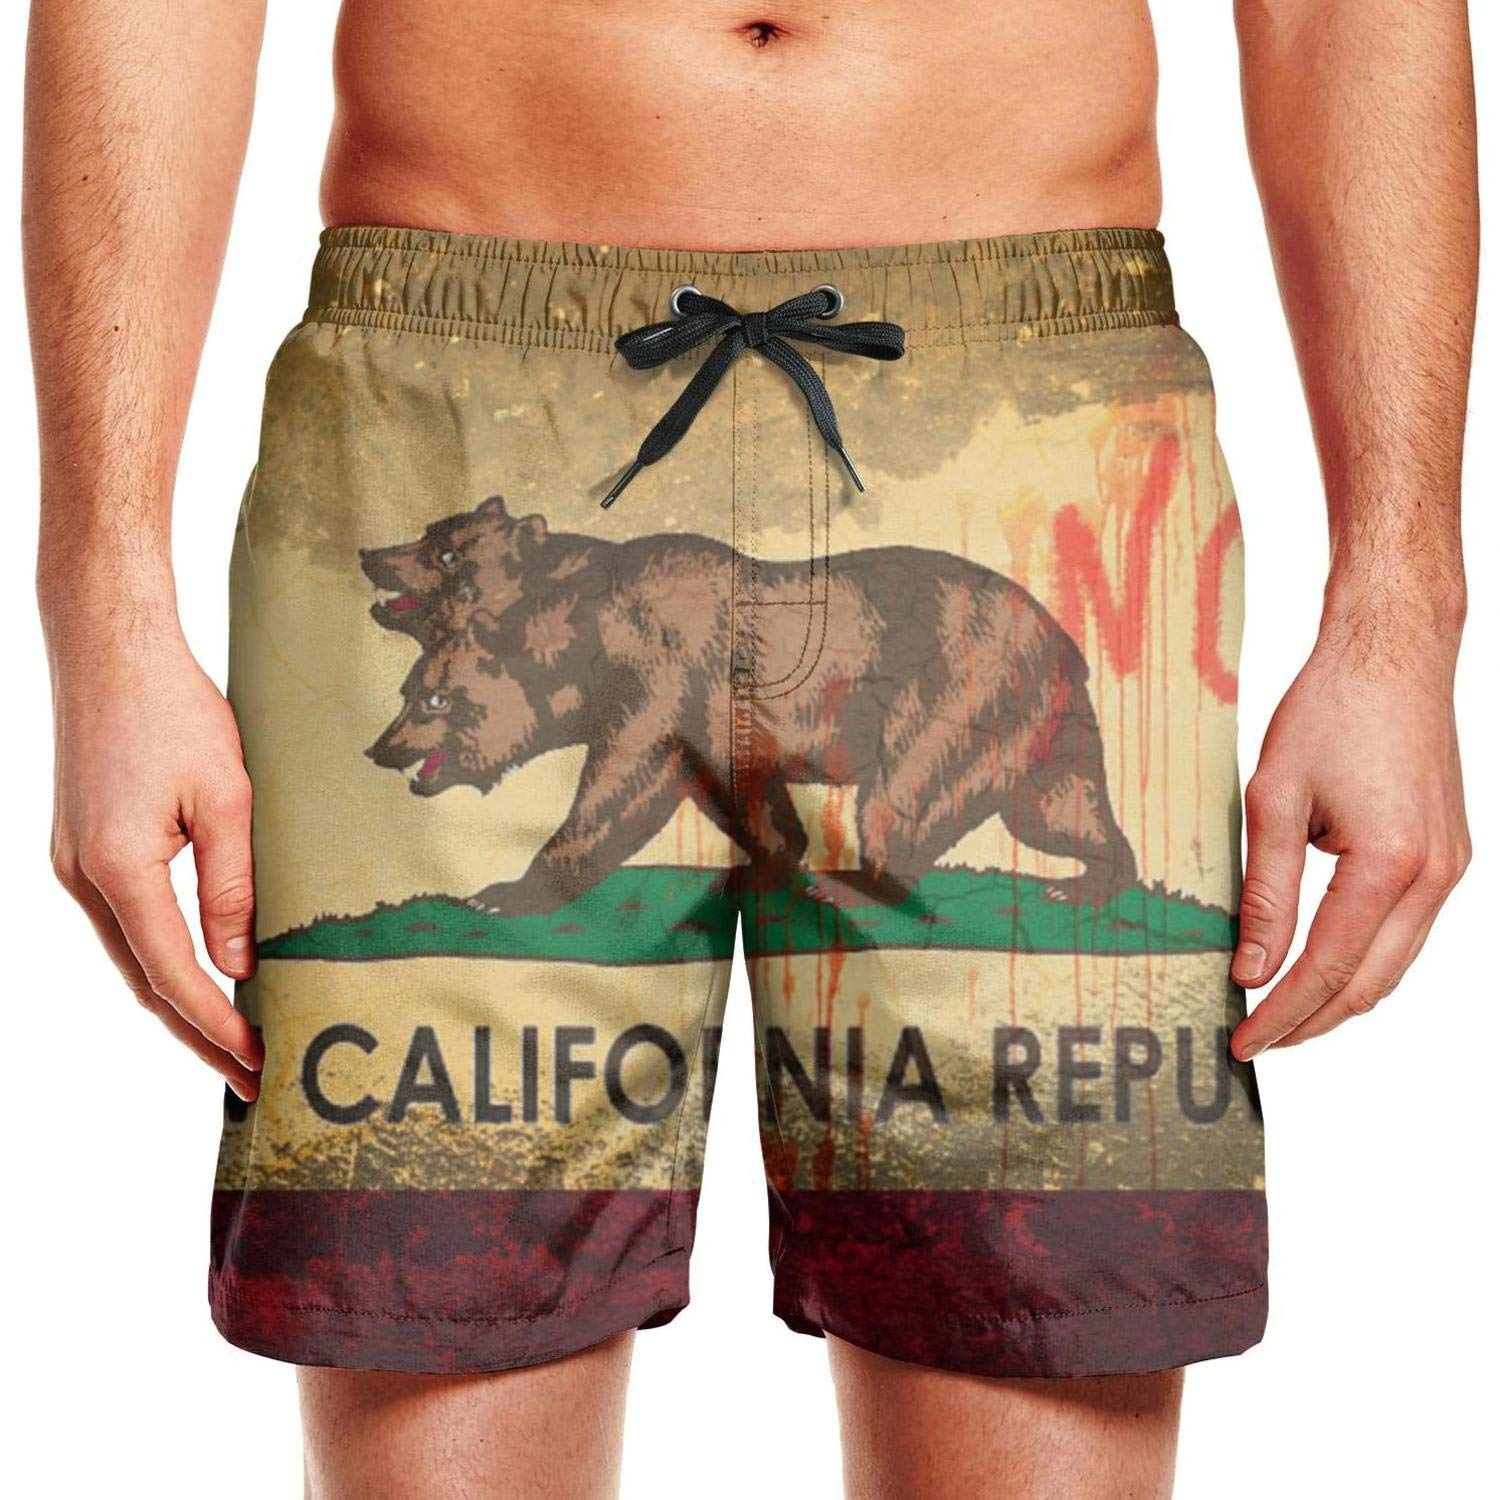 rtyil New California Republic Bear Mans Swimming Trunks Slim Fit Swim Shorts for Men Drawstring Beach Shorts